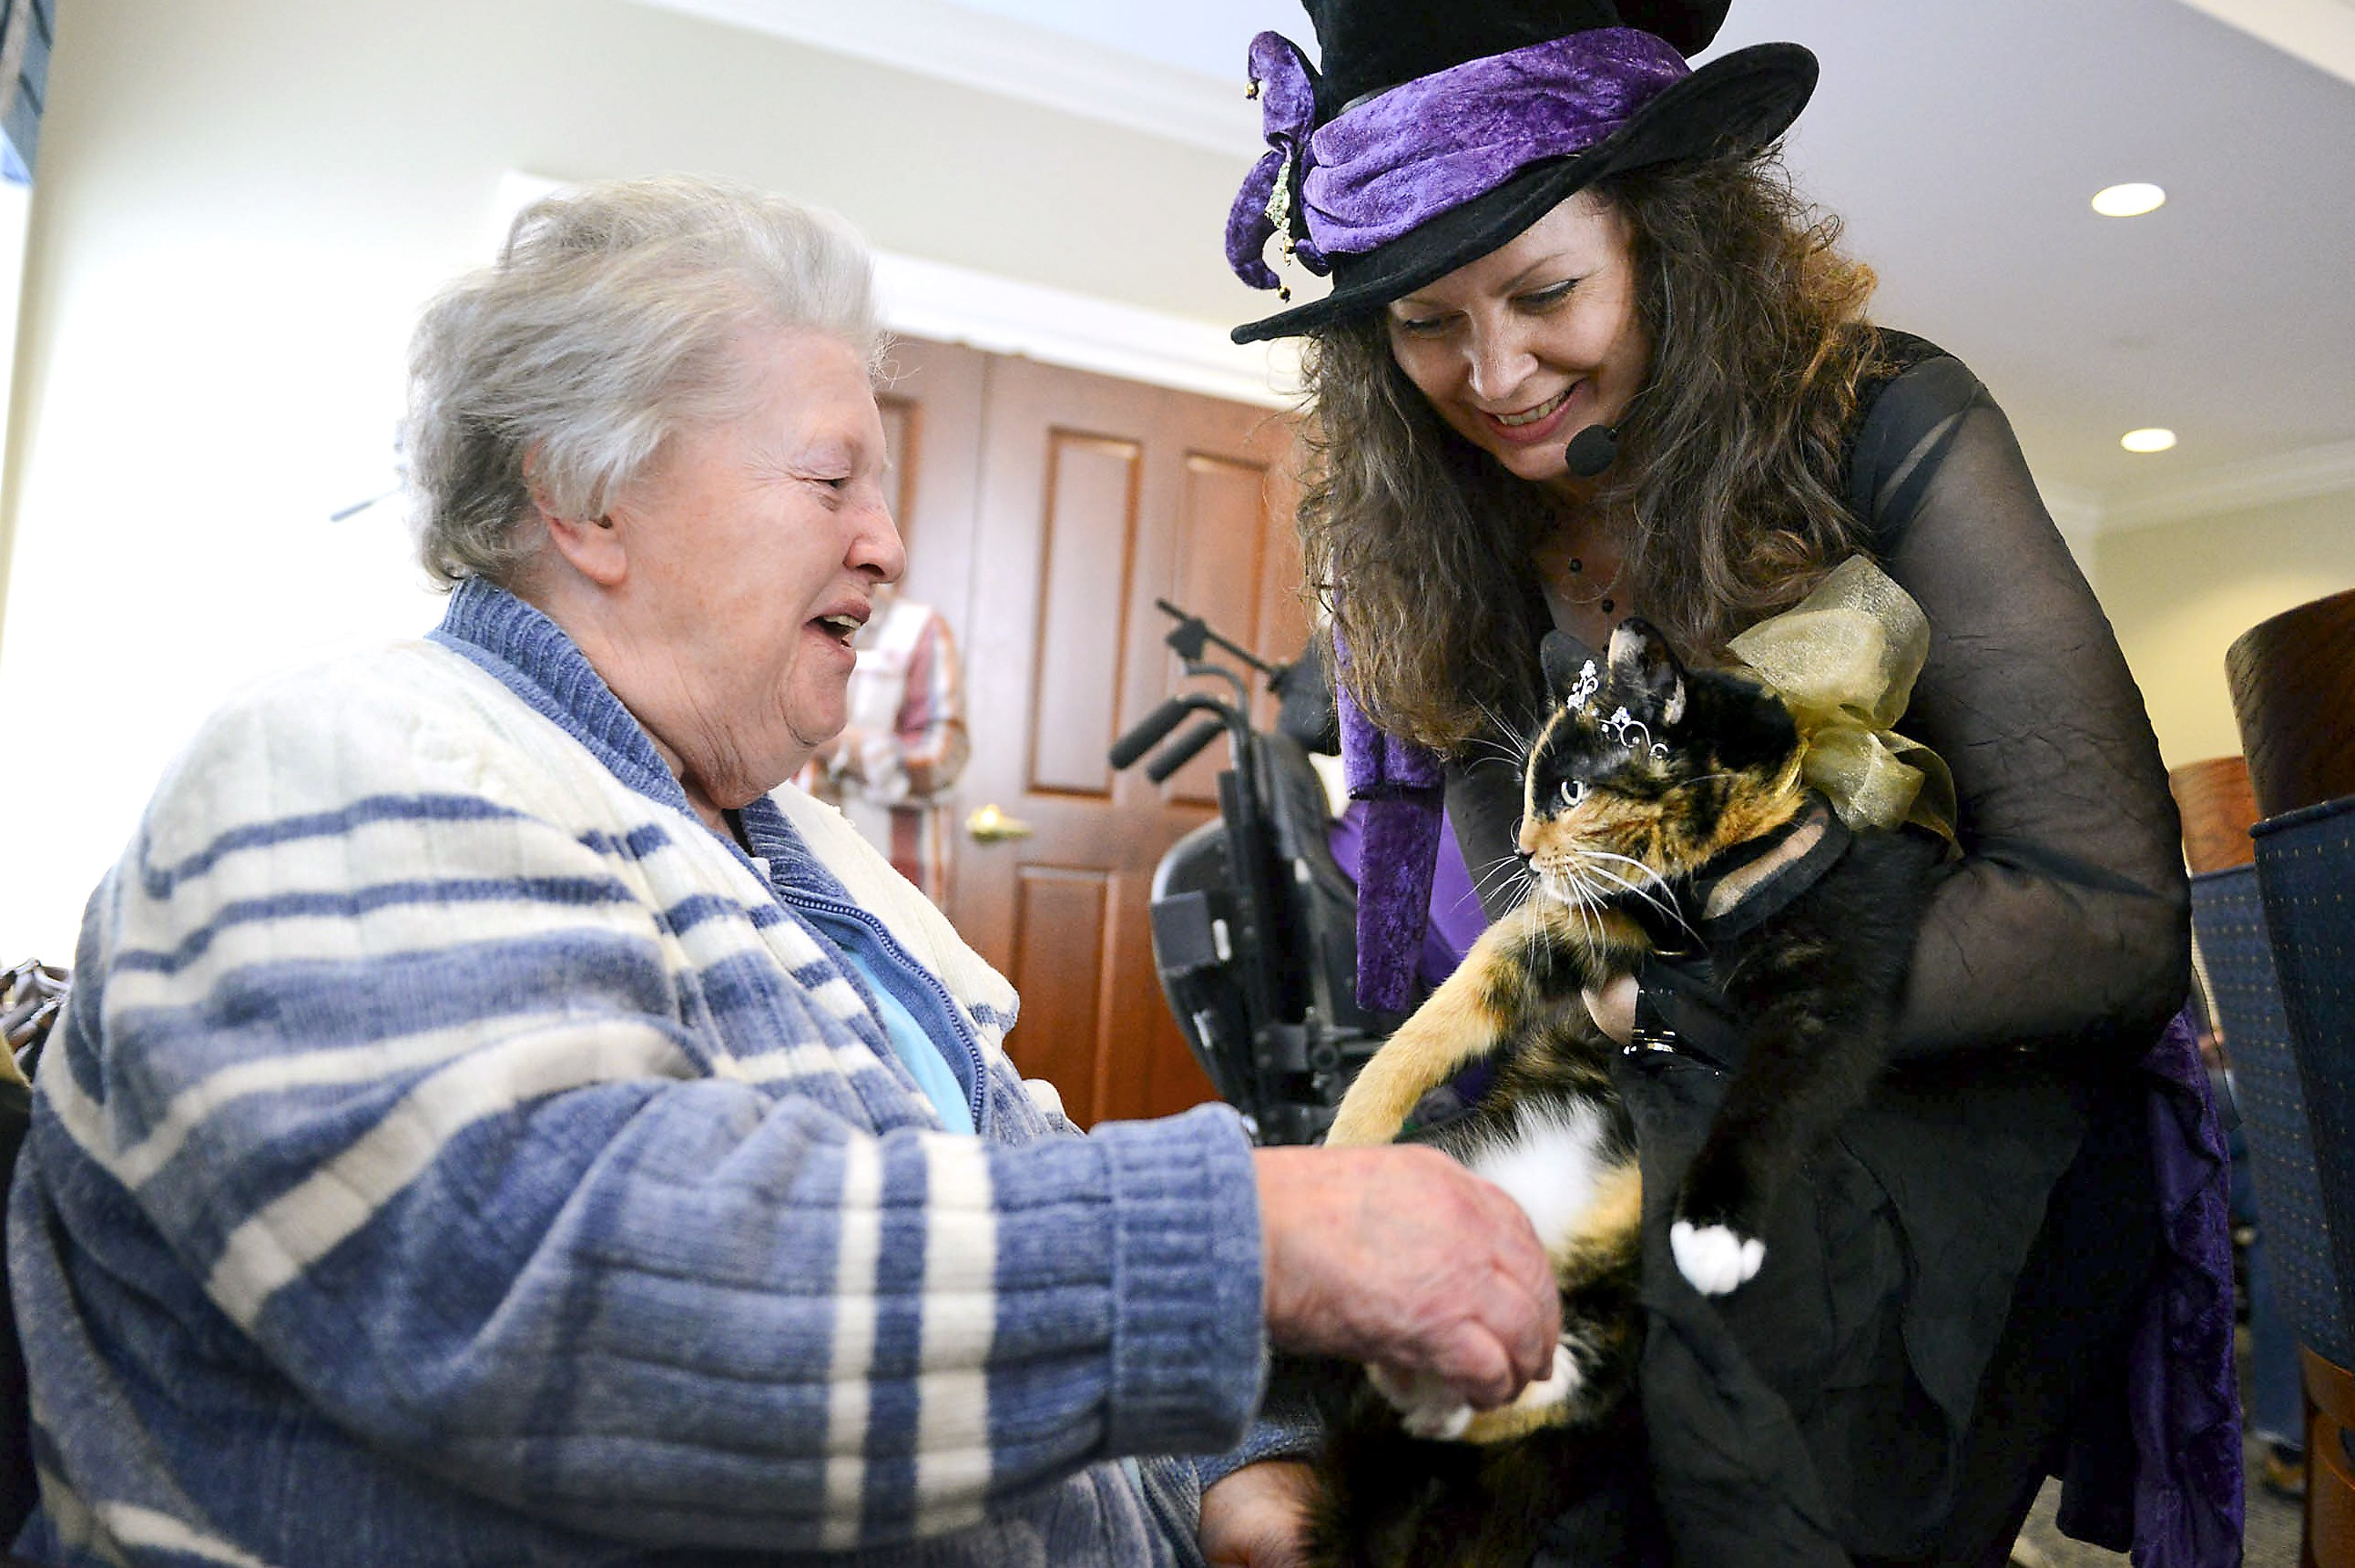 Karen McCandless of Butler lets Mary Wagner, 84, one of the residents of Concordia at Rebecca Residence in Allison Park, pet one of her two therapy cats, Tirzah, during a visit there on Wednesday, Jan. 7, 2015.